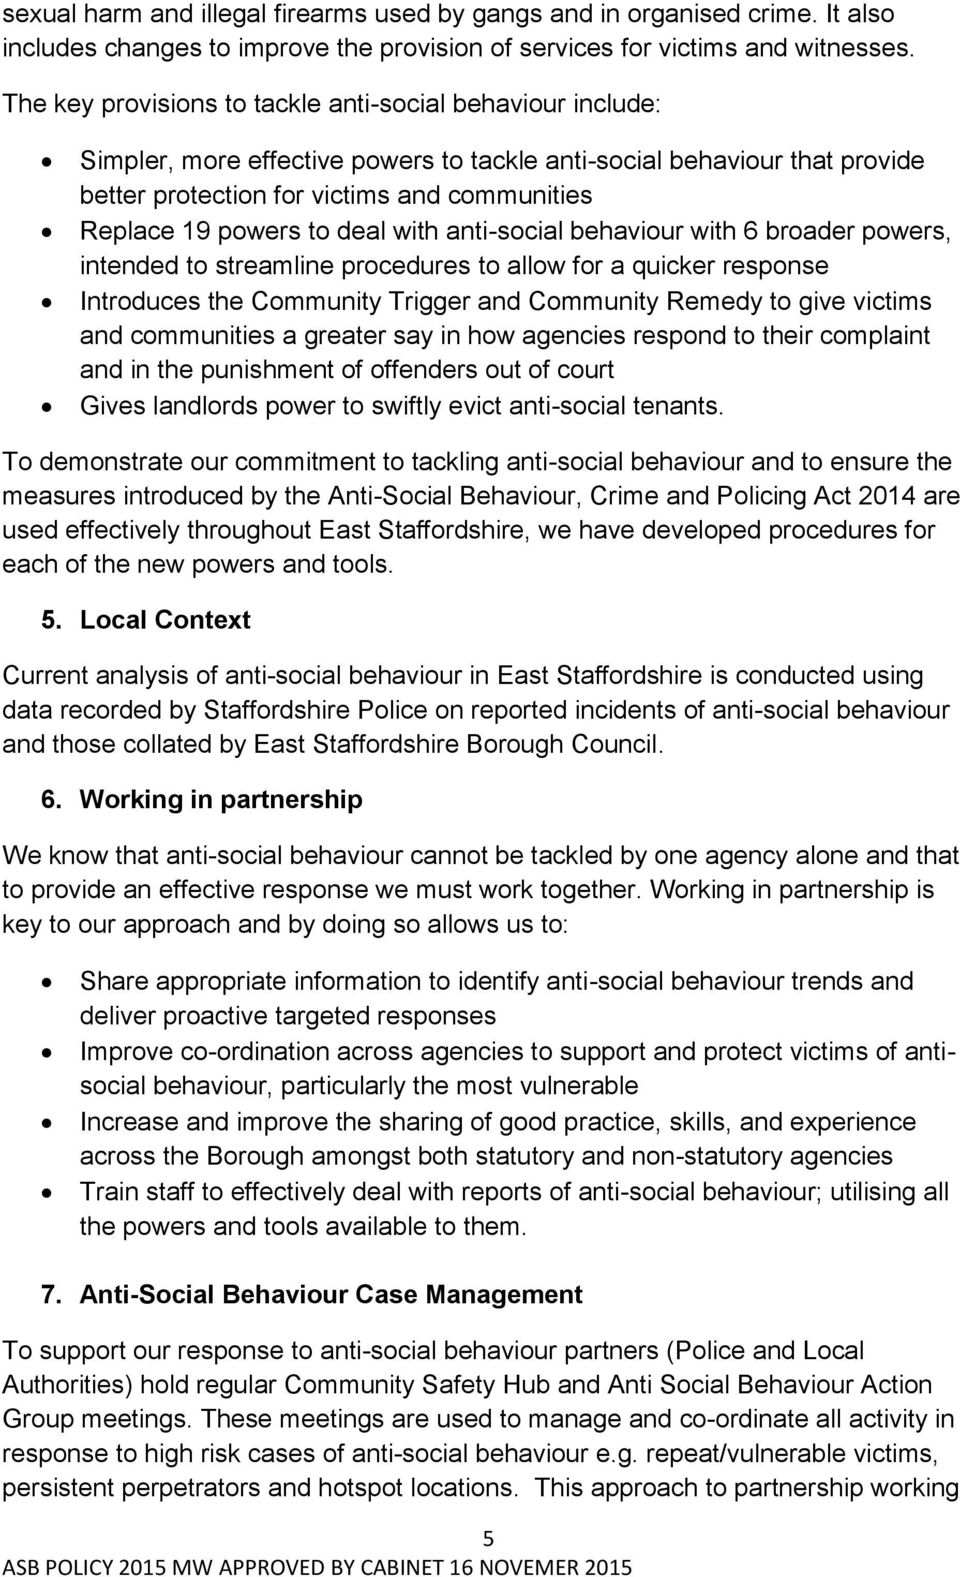 to deal with anti-social behaviour with 6 broader powers, intended to streamline procedures to allow for a quicker response Introduces the Community Trigger and Community Remedy to give victims and